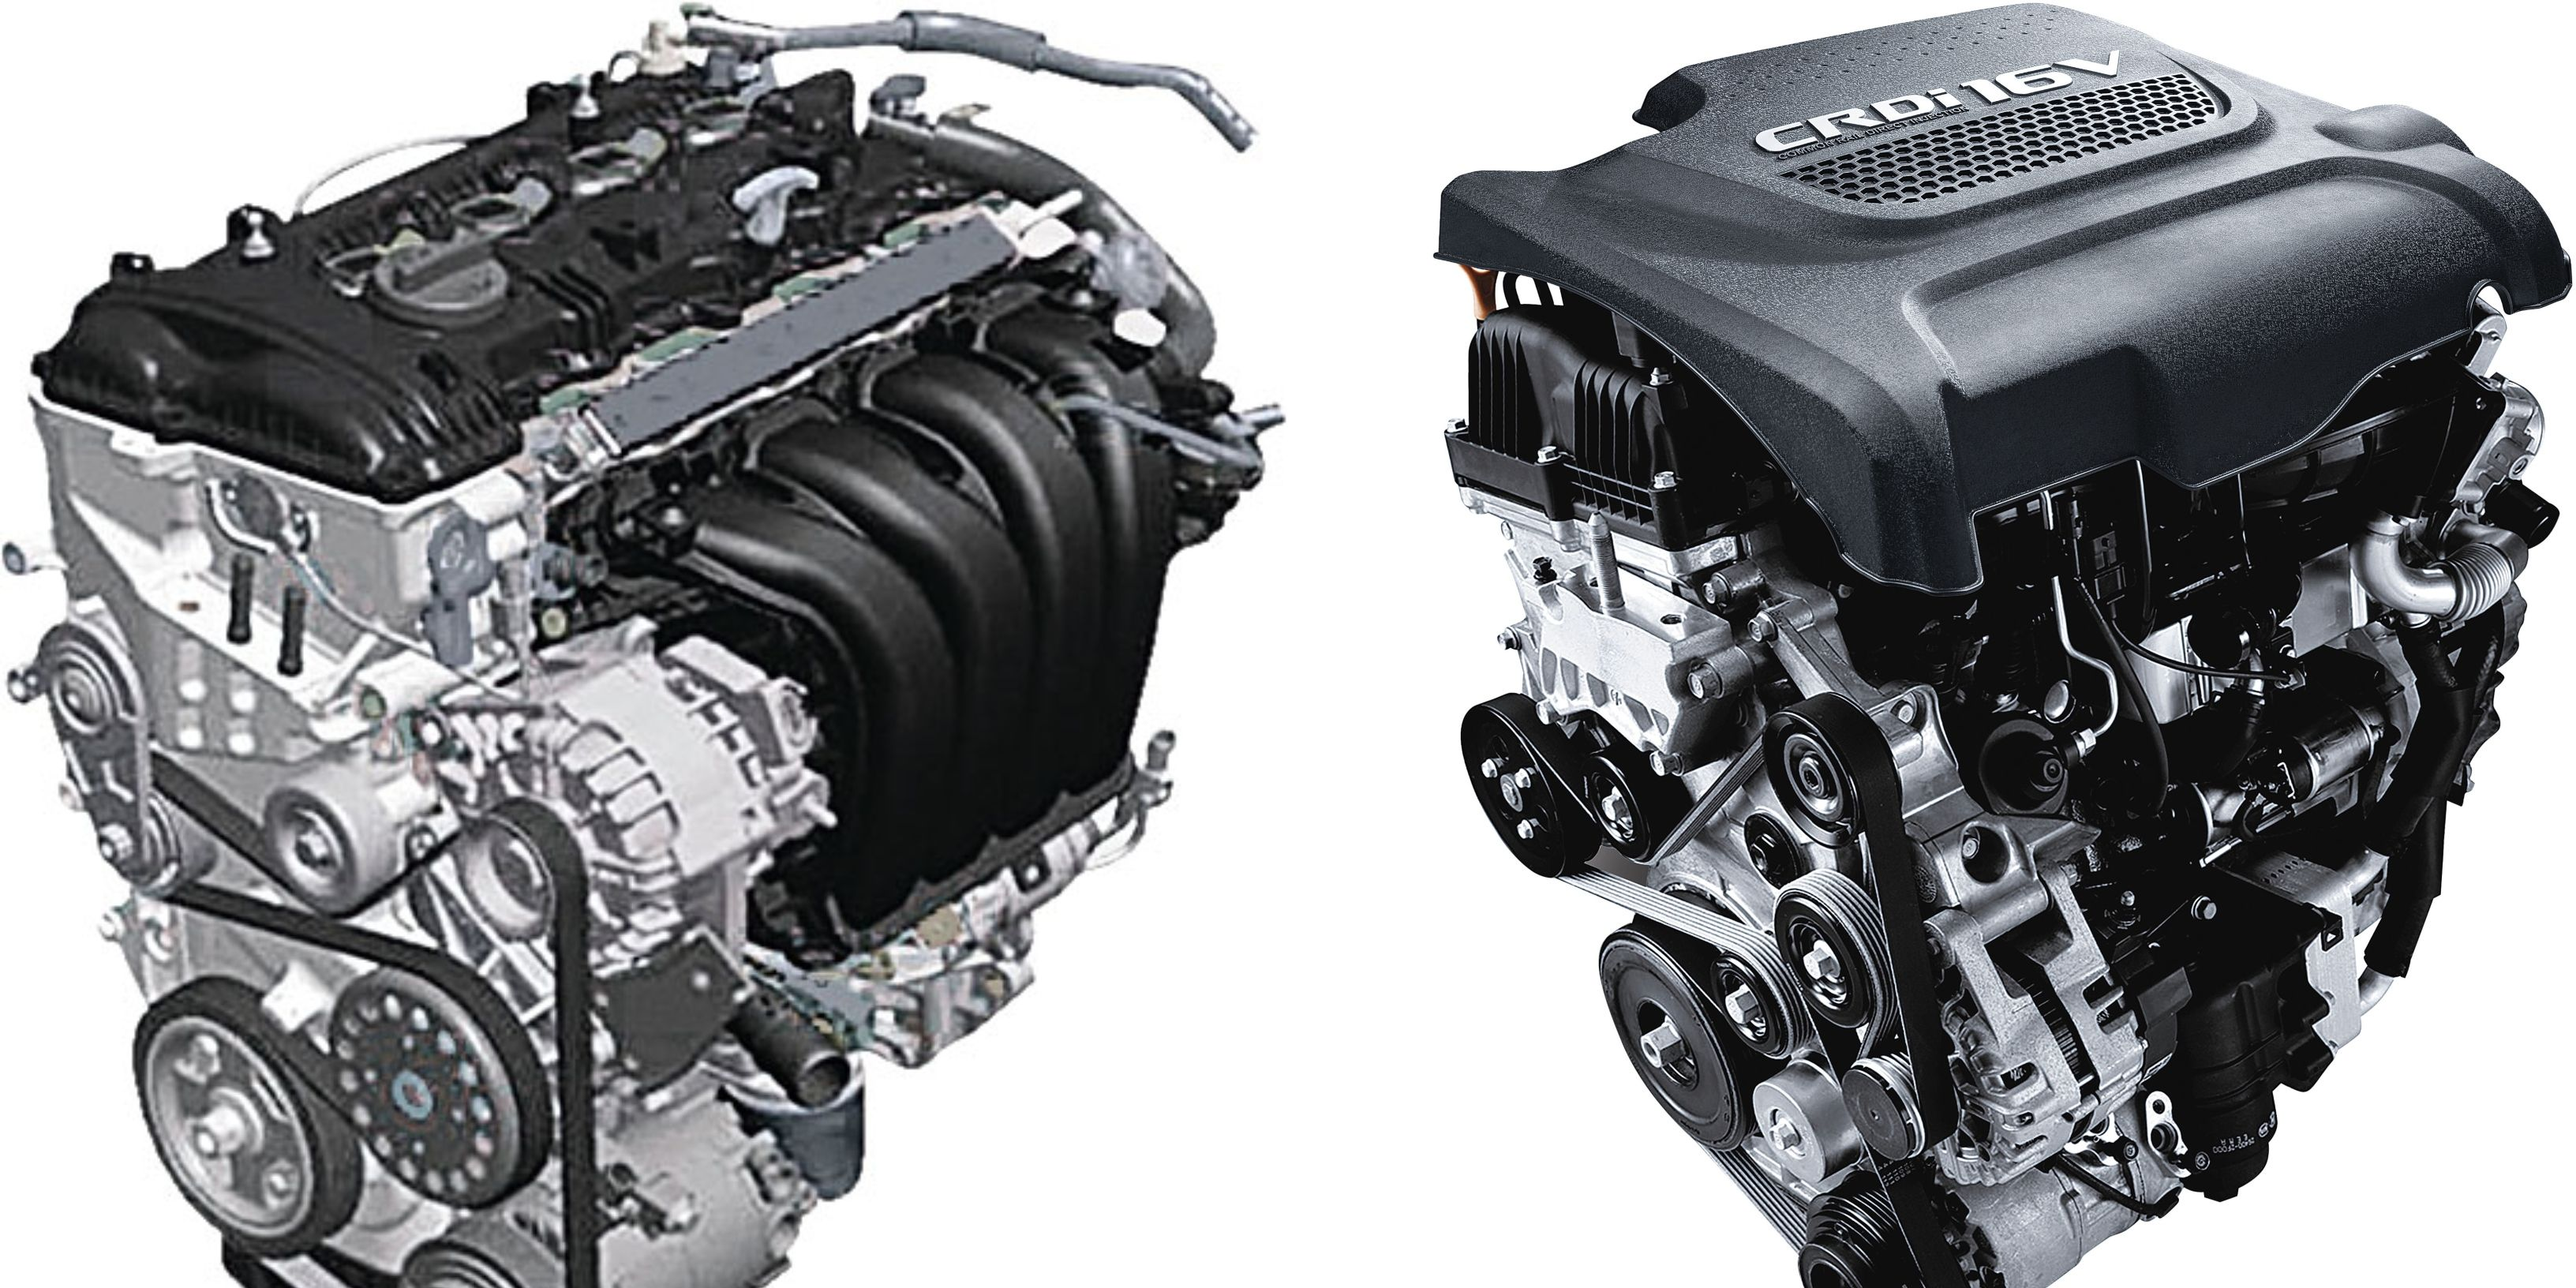 Under the hood, there is an option to choose between a 2.0-litre petrol engine and a 2.0-litre diesel engines. The former makes 153 bhp of power and has 192 Nm of torque while the diesel unit 182 bhp and has maximum torque of 400 Nm.